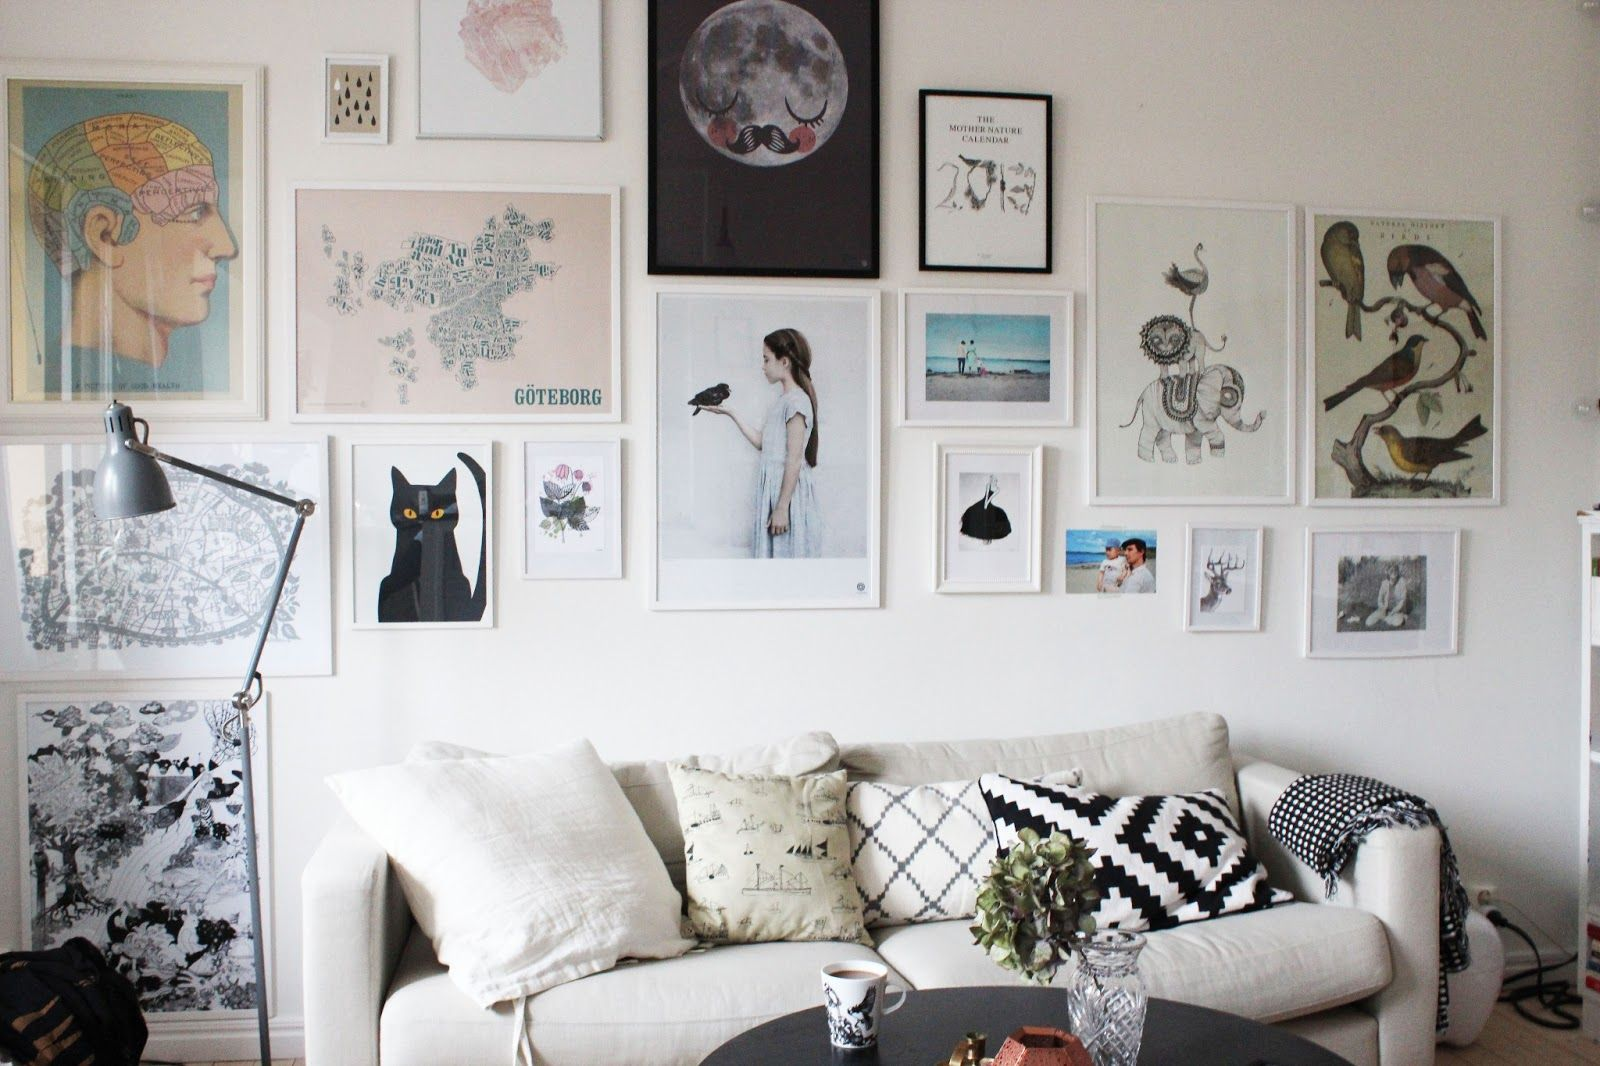 Great picture collection above monochrome sofa and cushions.